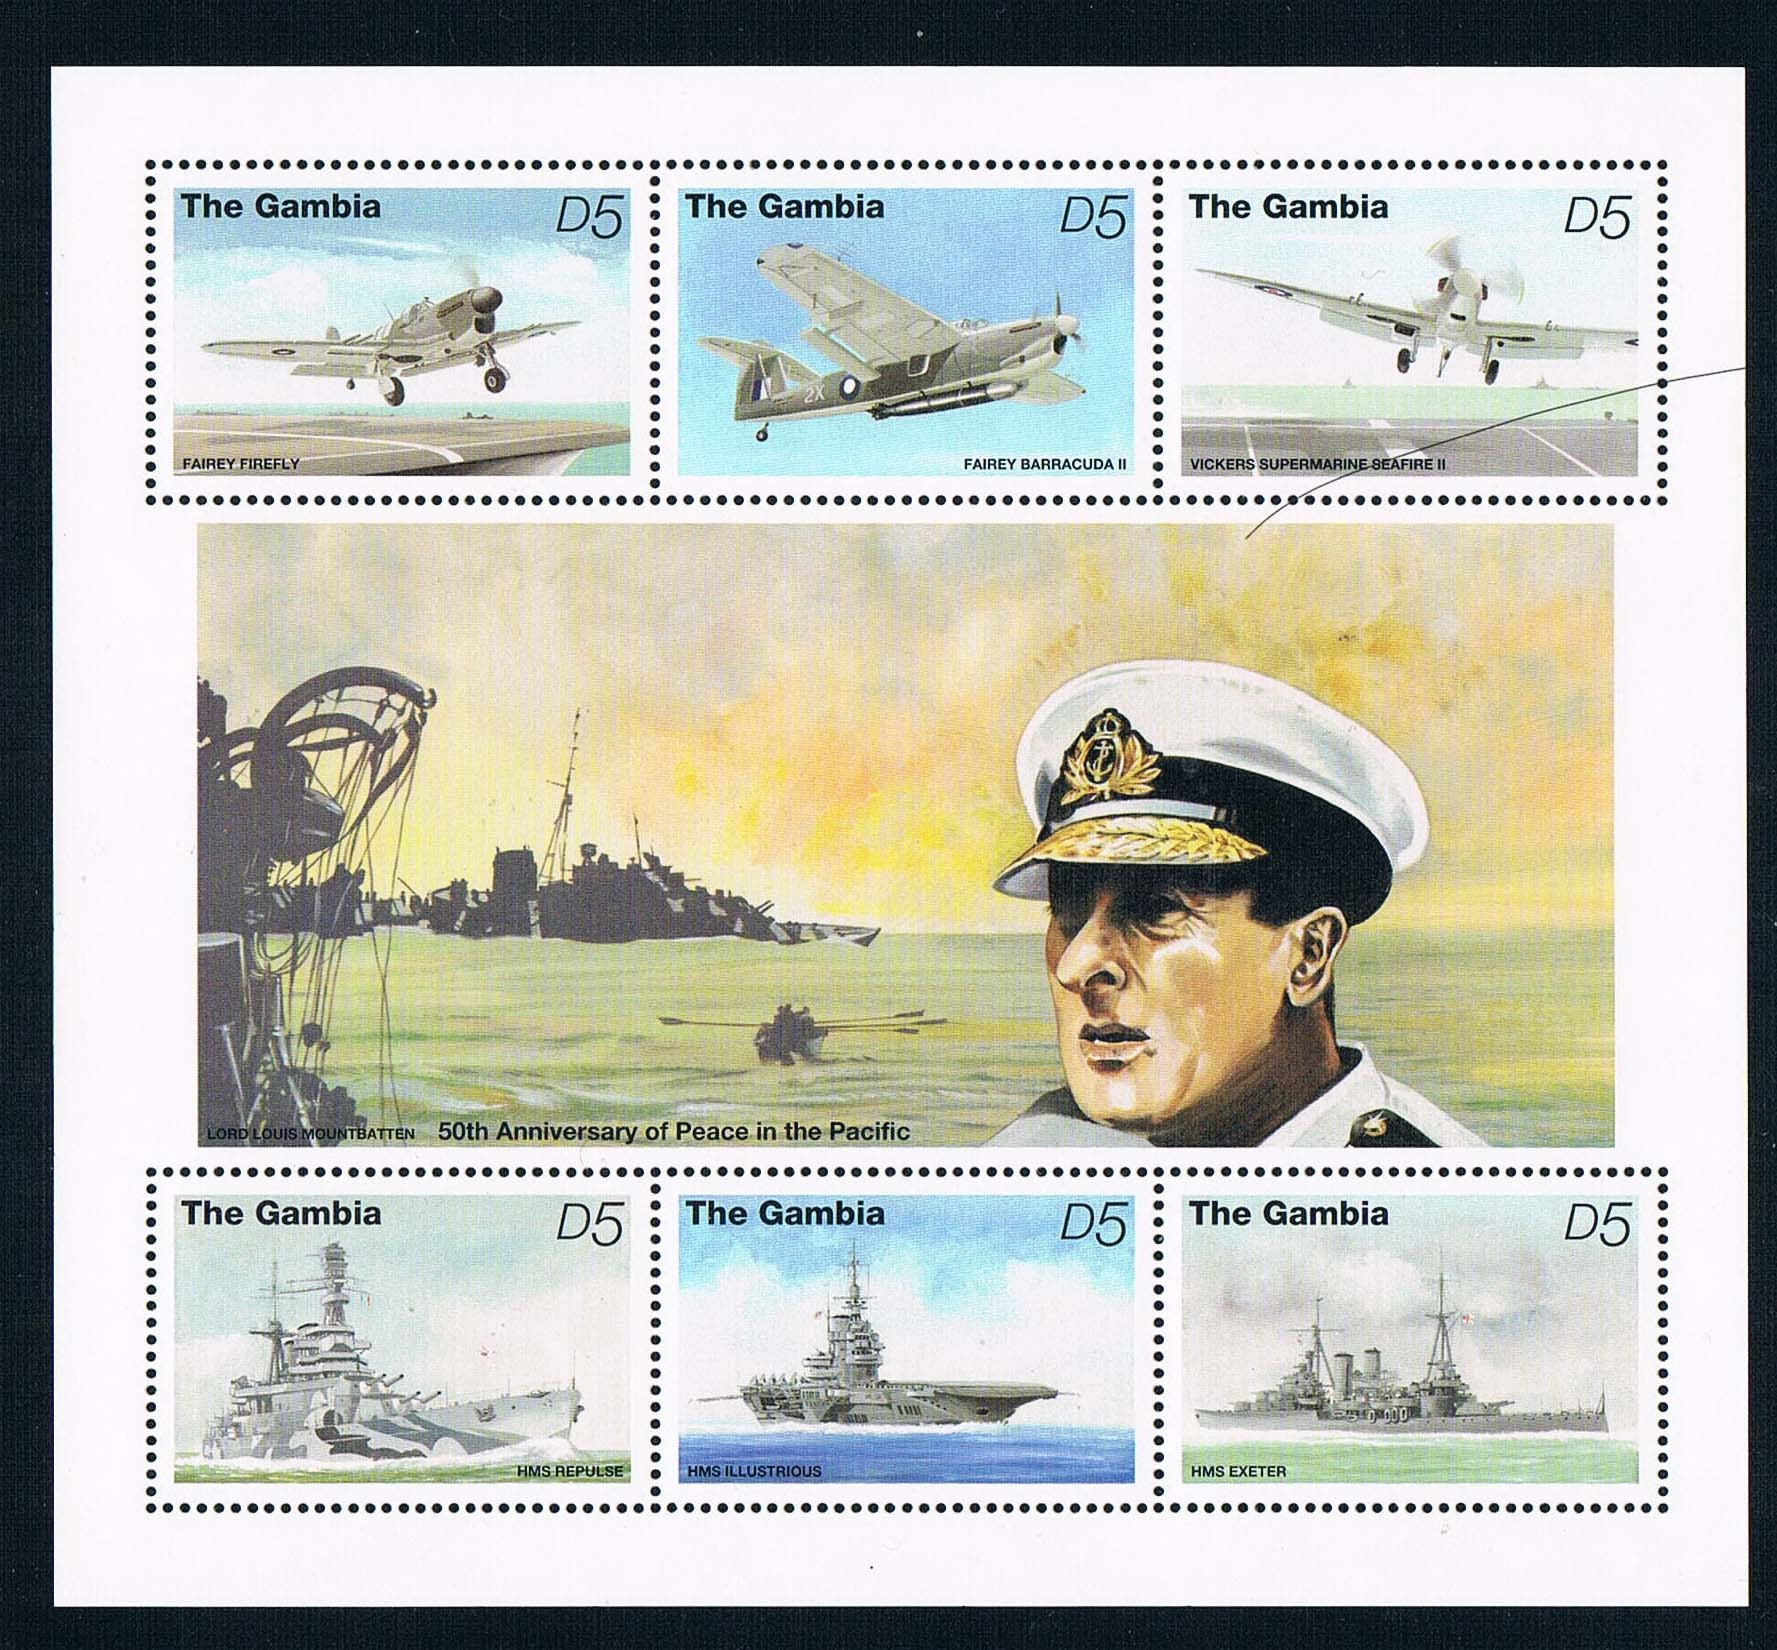 FA0516 Gambia 1995 World War II in the Pacific Naval Aircraft Carrier 1MS new stamps long way back to the river kwai memories of world war ii